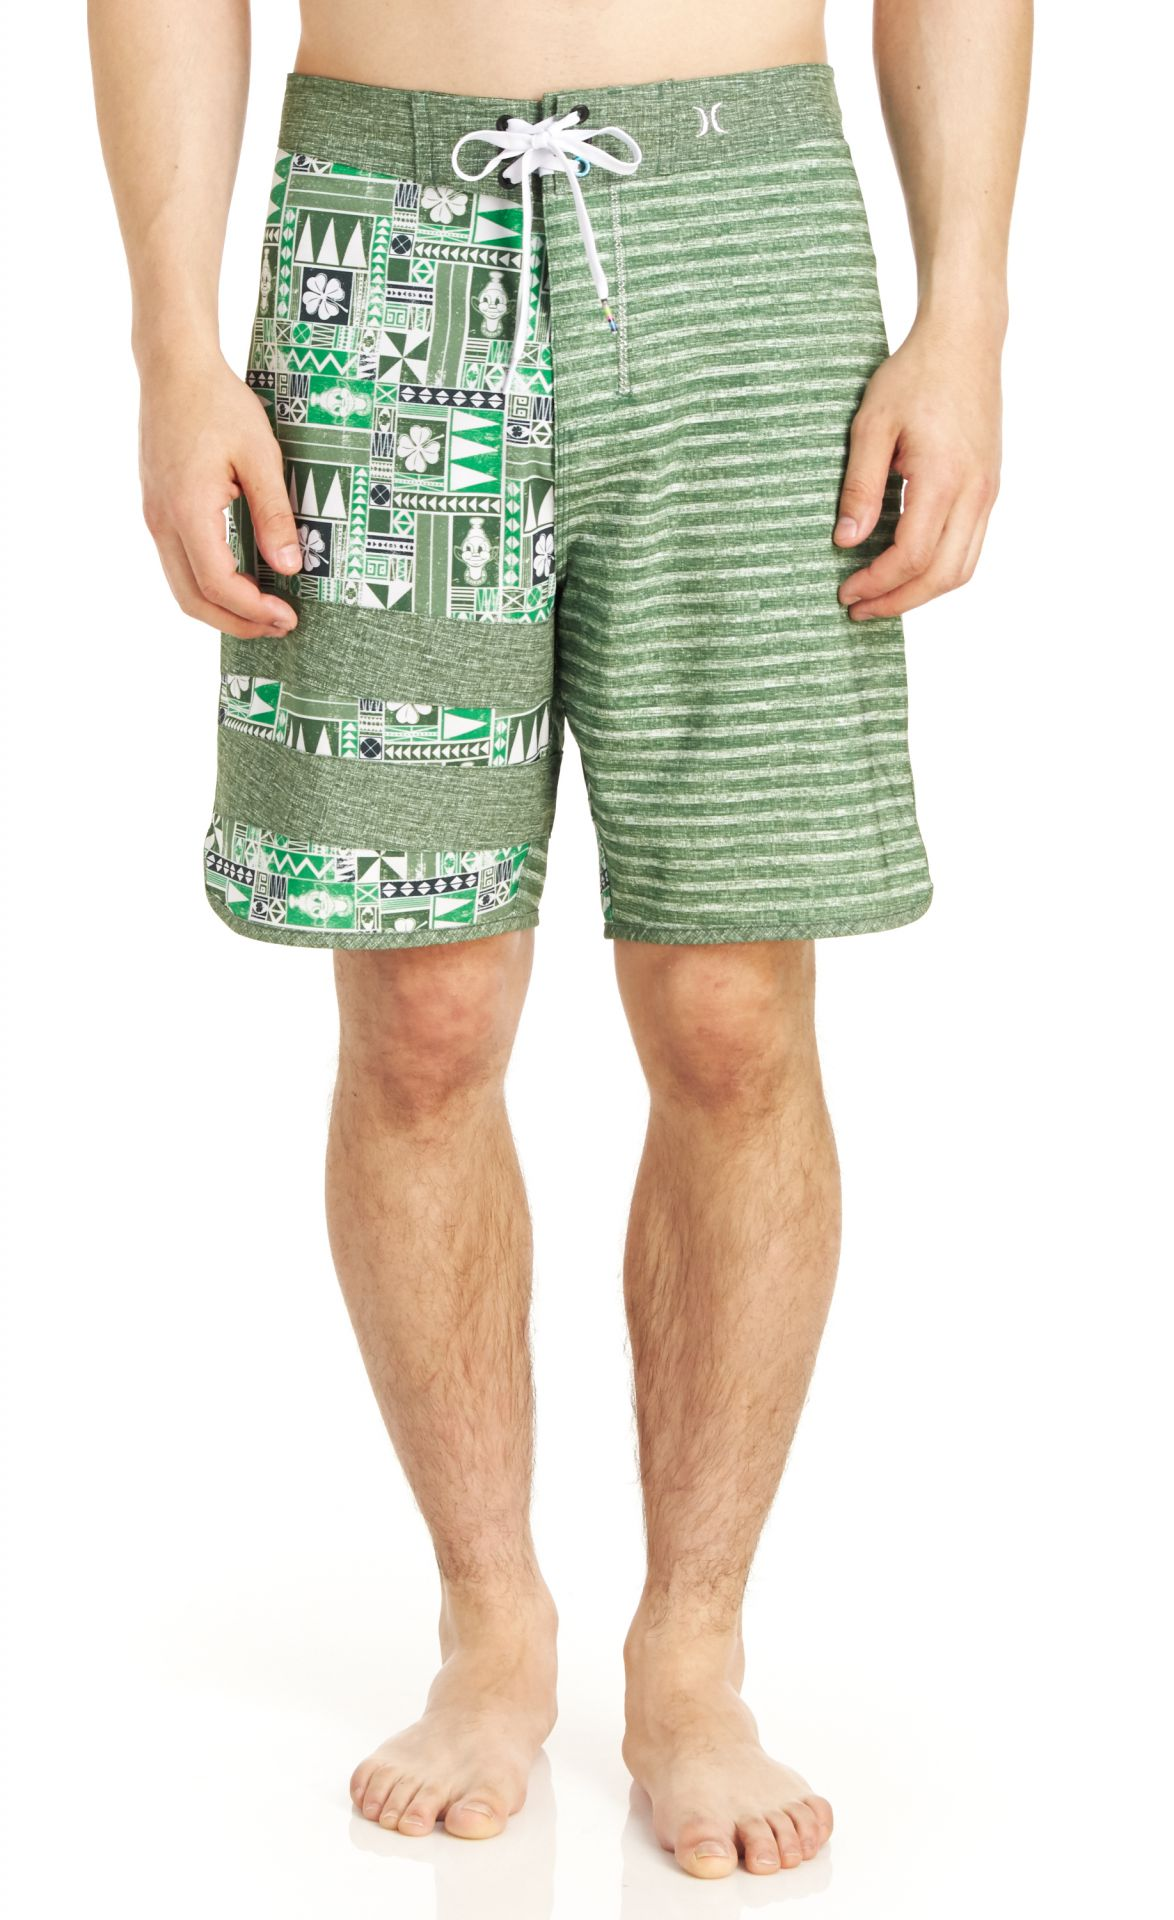 Hurley Men's Phantom Block Party O Hurley Boardshort - Green - 29